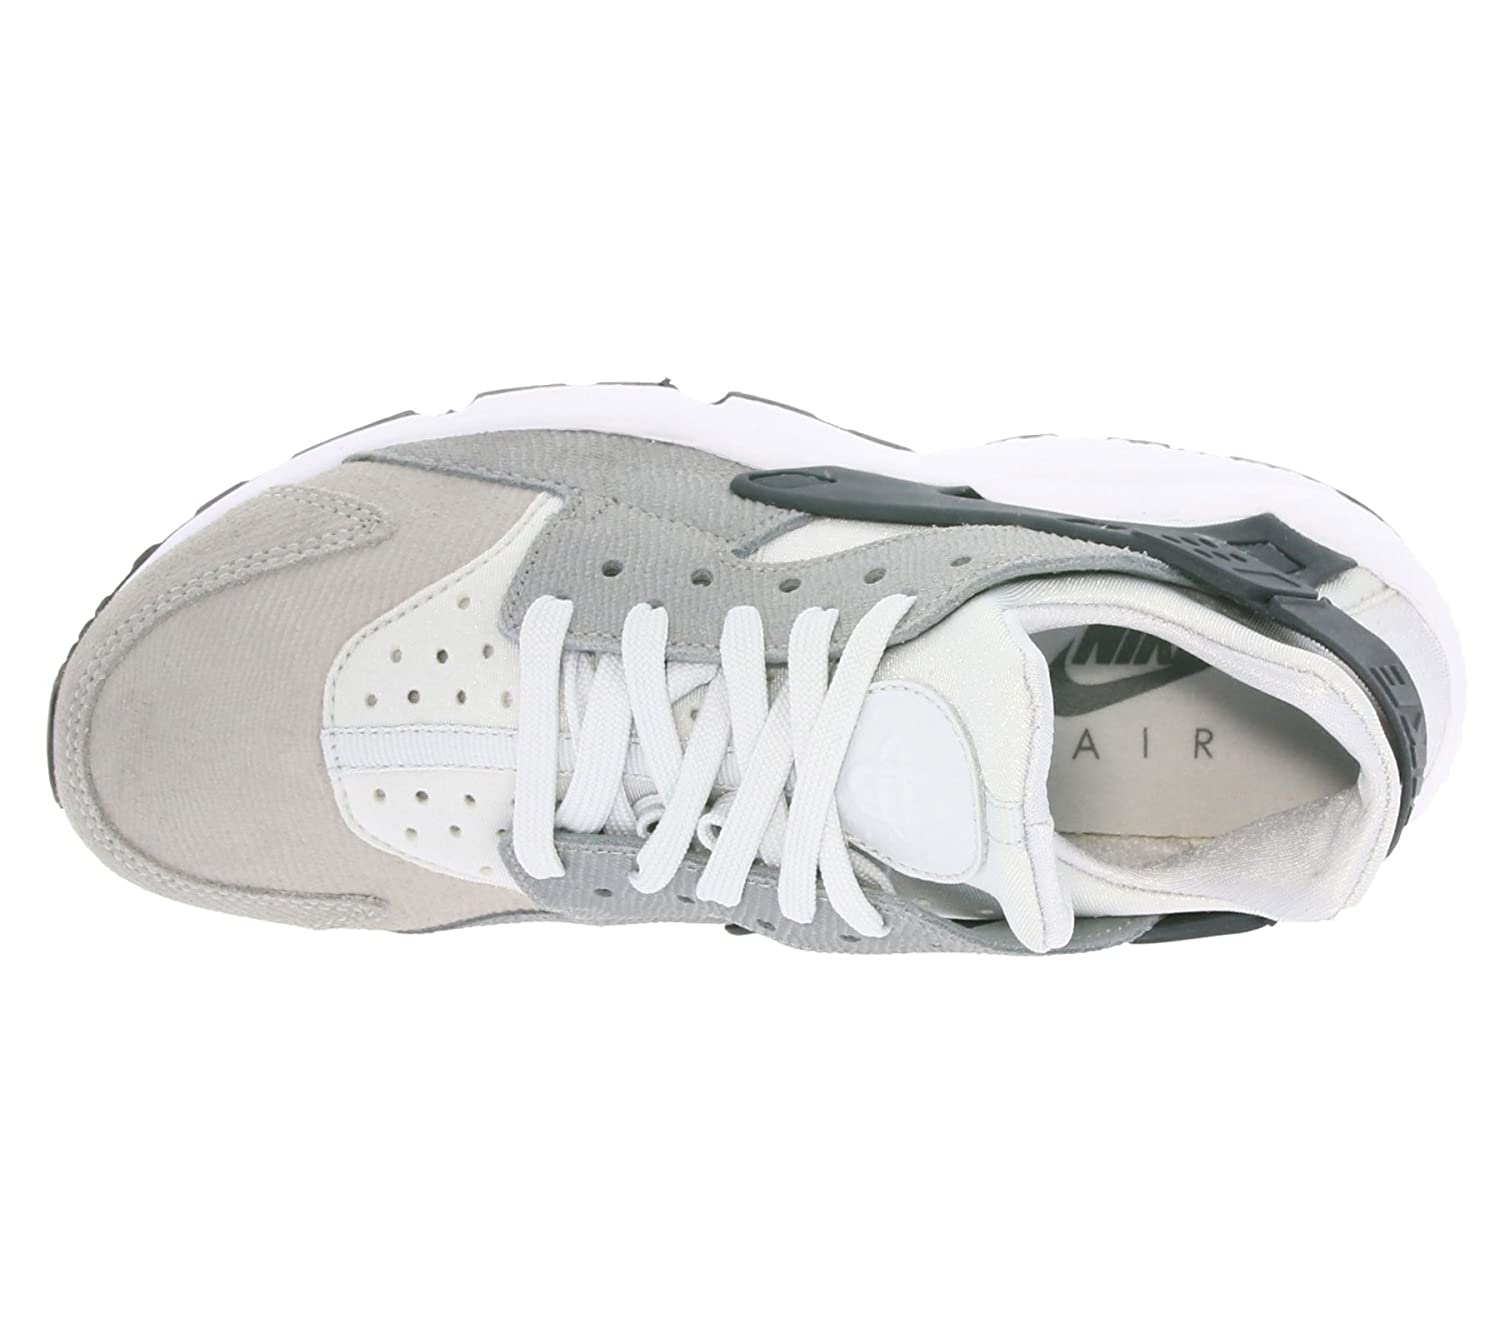 NIKE Damen 683818-009 Traillaufschuhe Grau (Pure Platinum Anthracite) / Cool Grau Anthracite) Platinum 6596e0